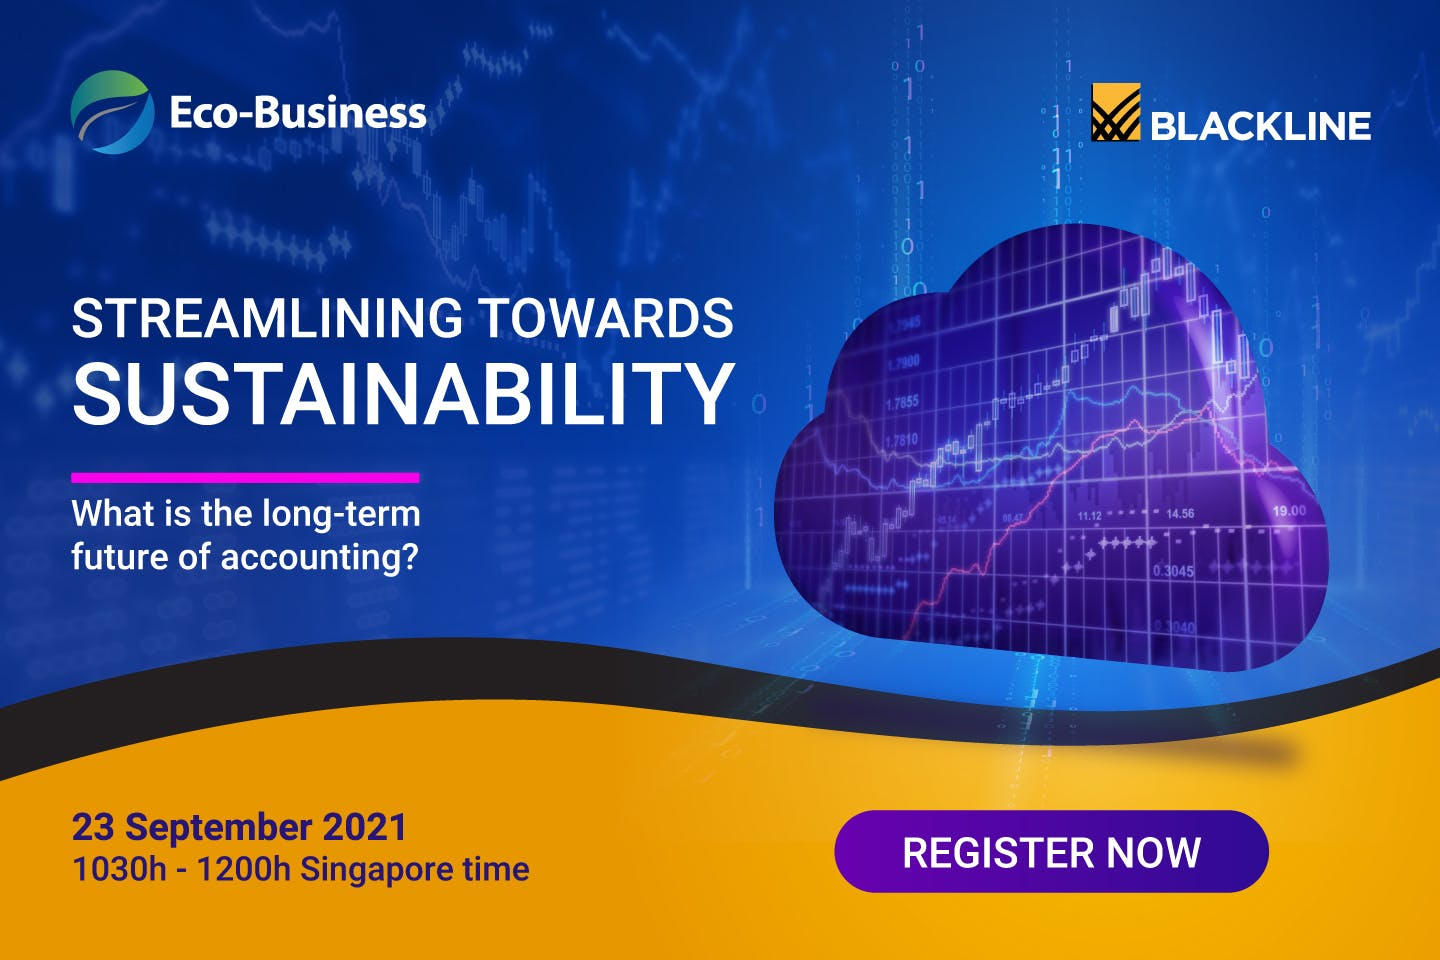 Streamlining towards sustainability: what is the long-term future of accounting?